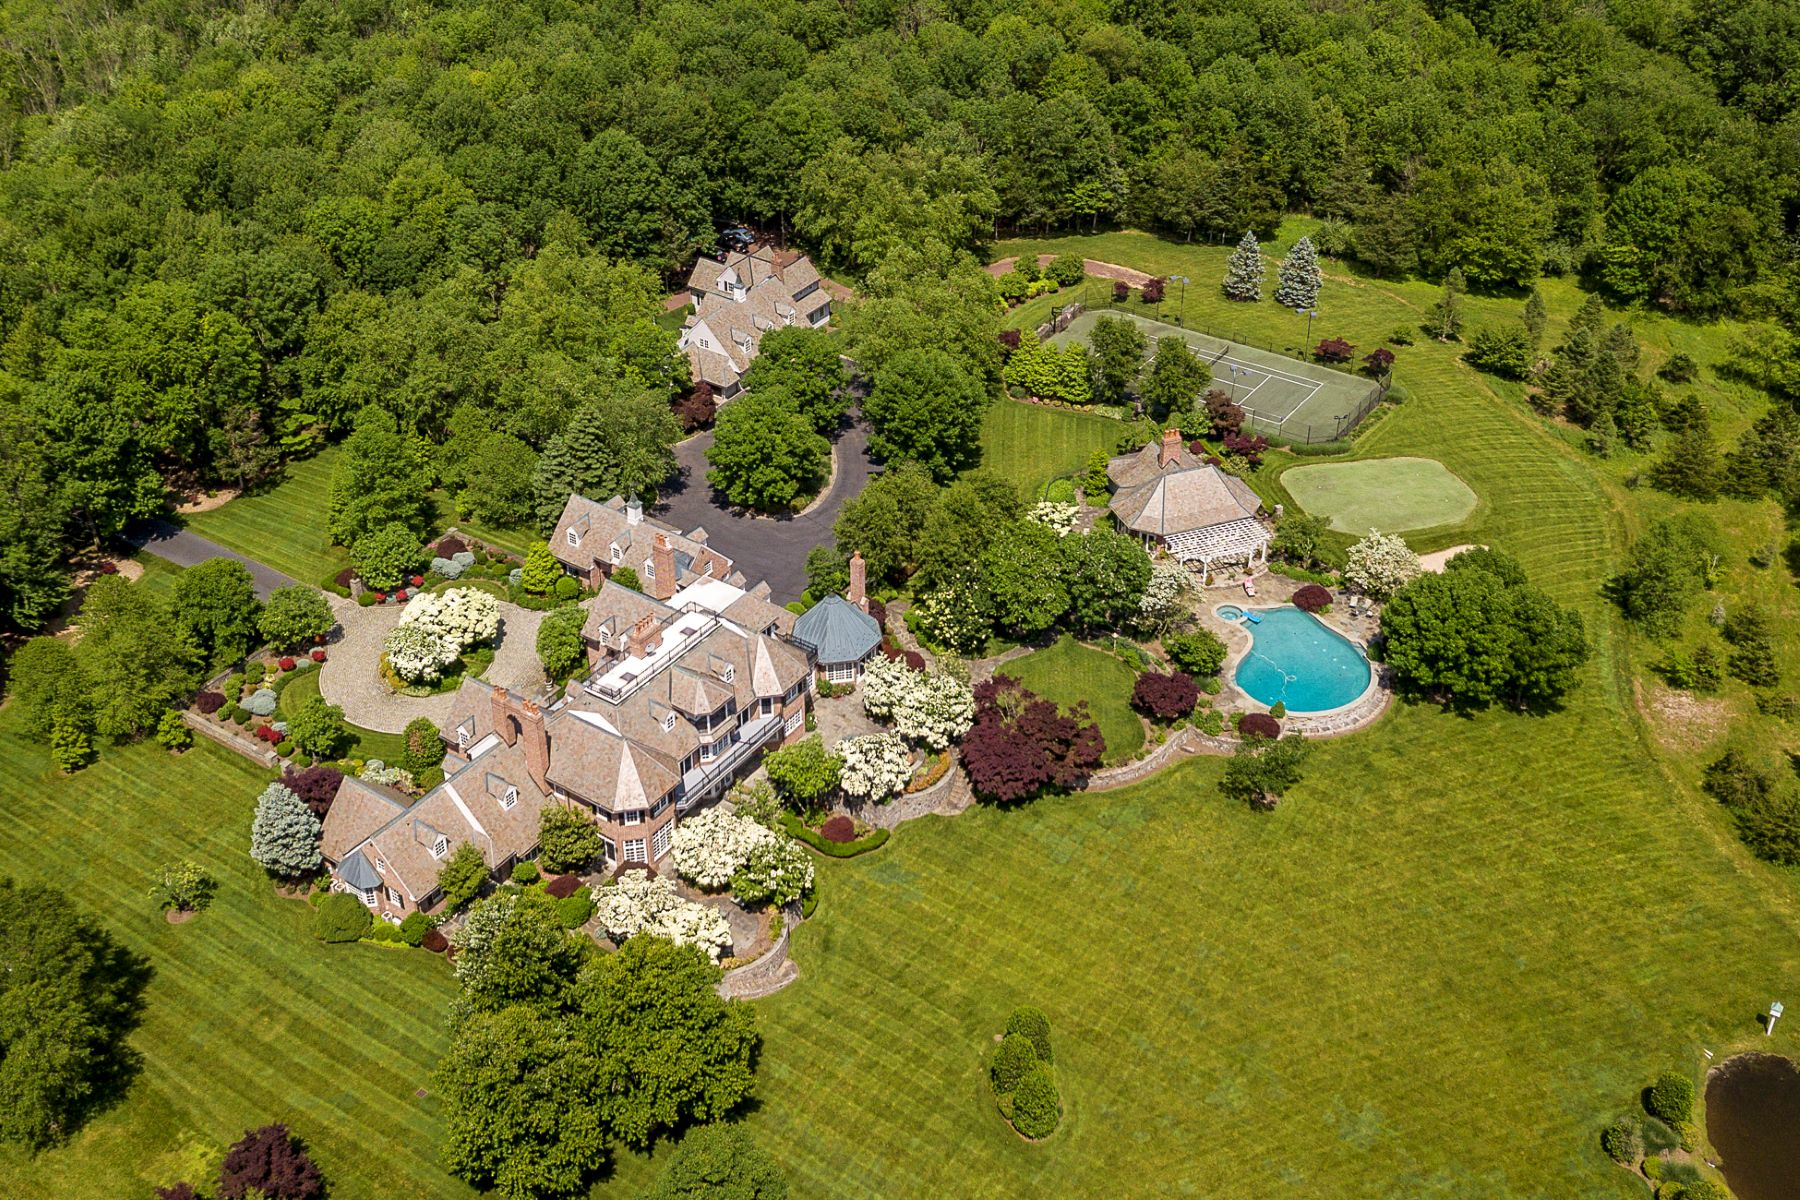 Propriété pour l Vente à Private Compound with Every Amenity Imaginable 82 Aunt Molly Road, Hopewell, New Jersey 08525 États-Unis